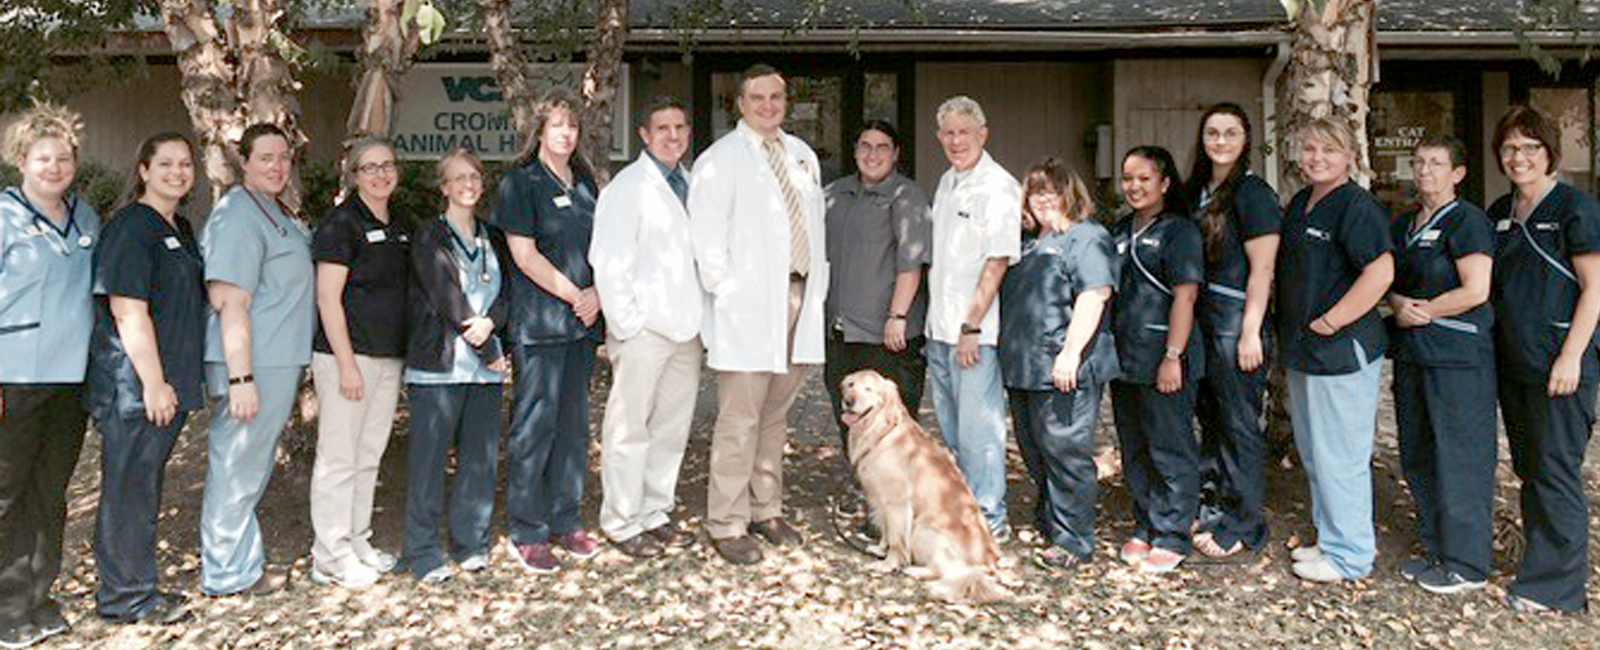 Homepage Team Picture of  VCA Cromwell Animal Hospital